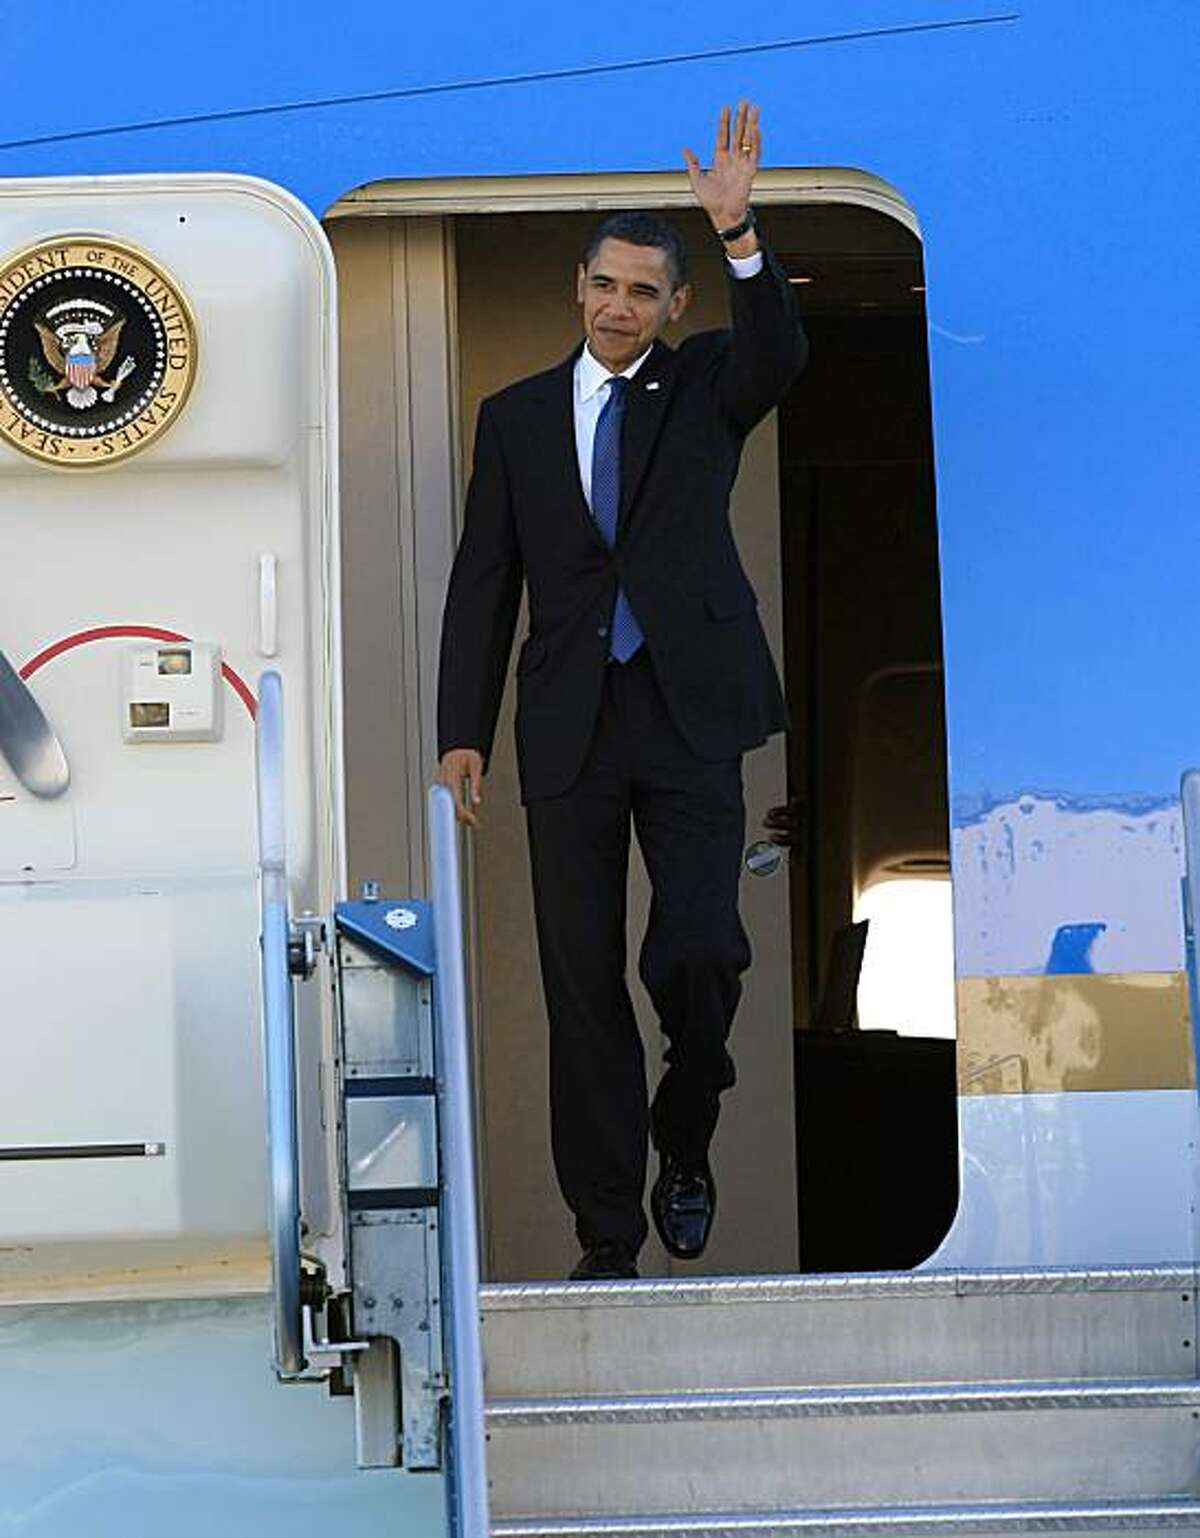 President Obama arrives on Air Force One at SFO in San Francisco on Thursday.